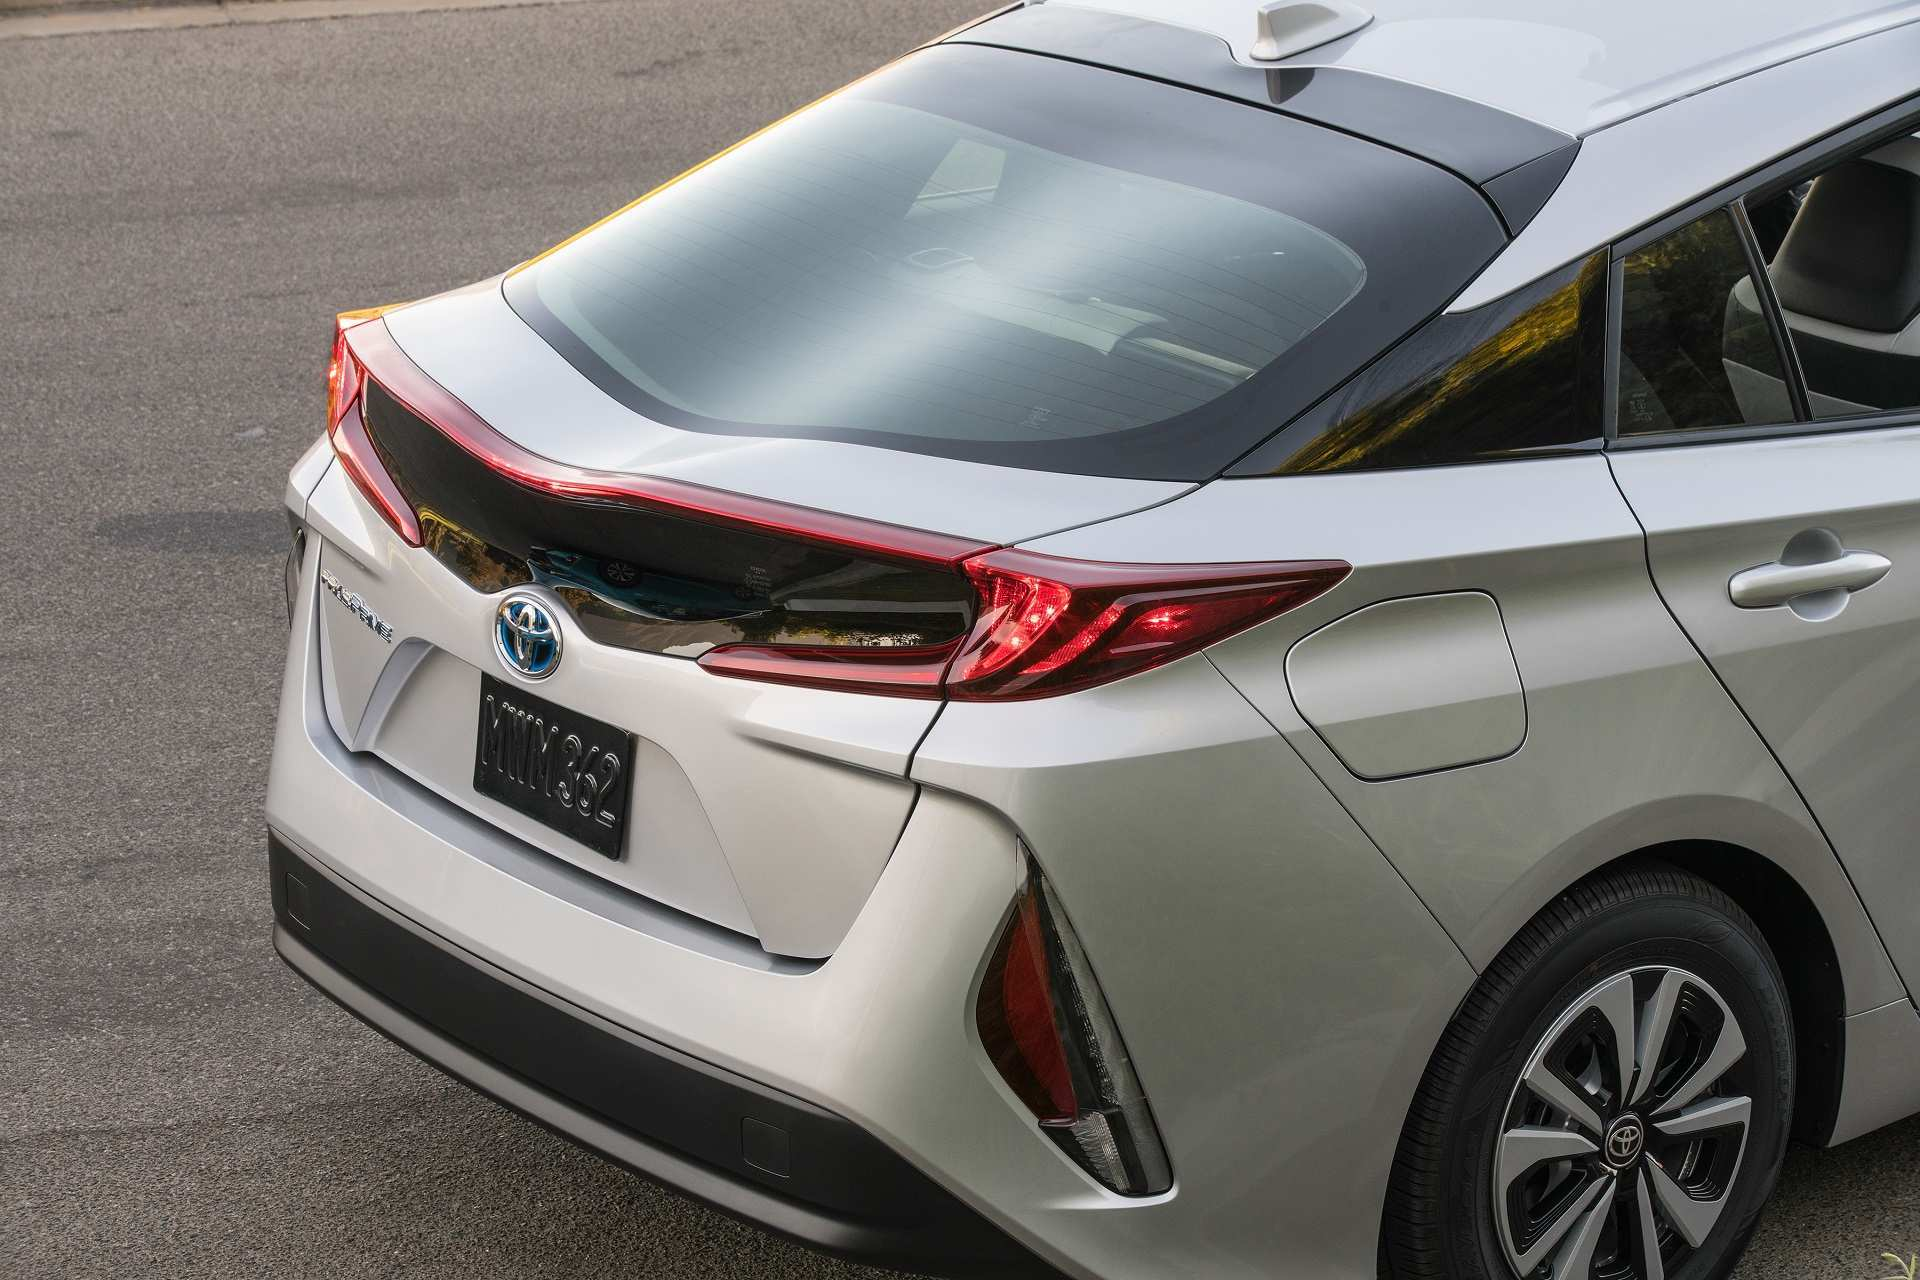 82 Concept of Toyota Prius Prime 2020 New Concept by Toyota Prius Prime 2020